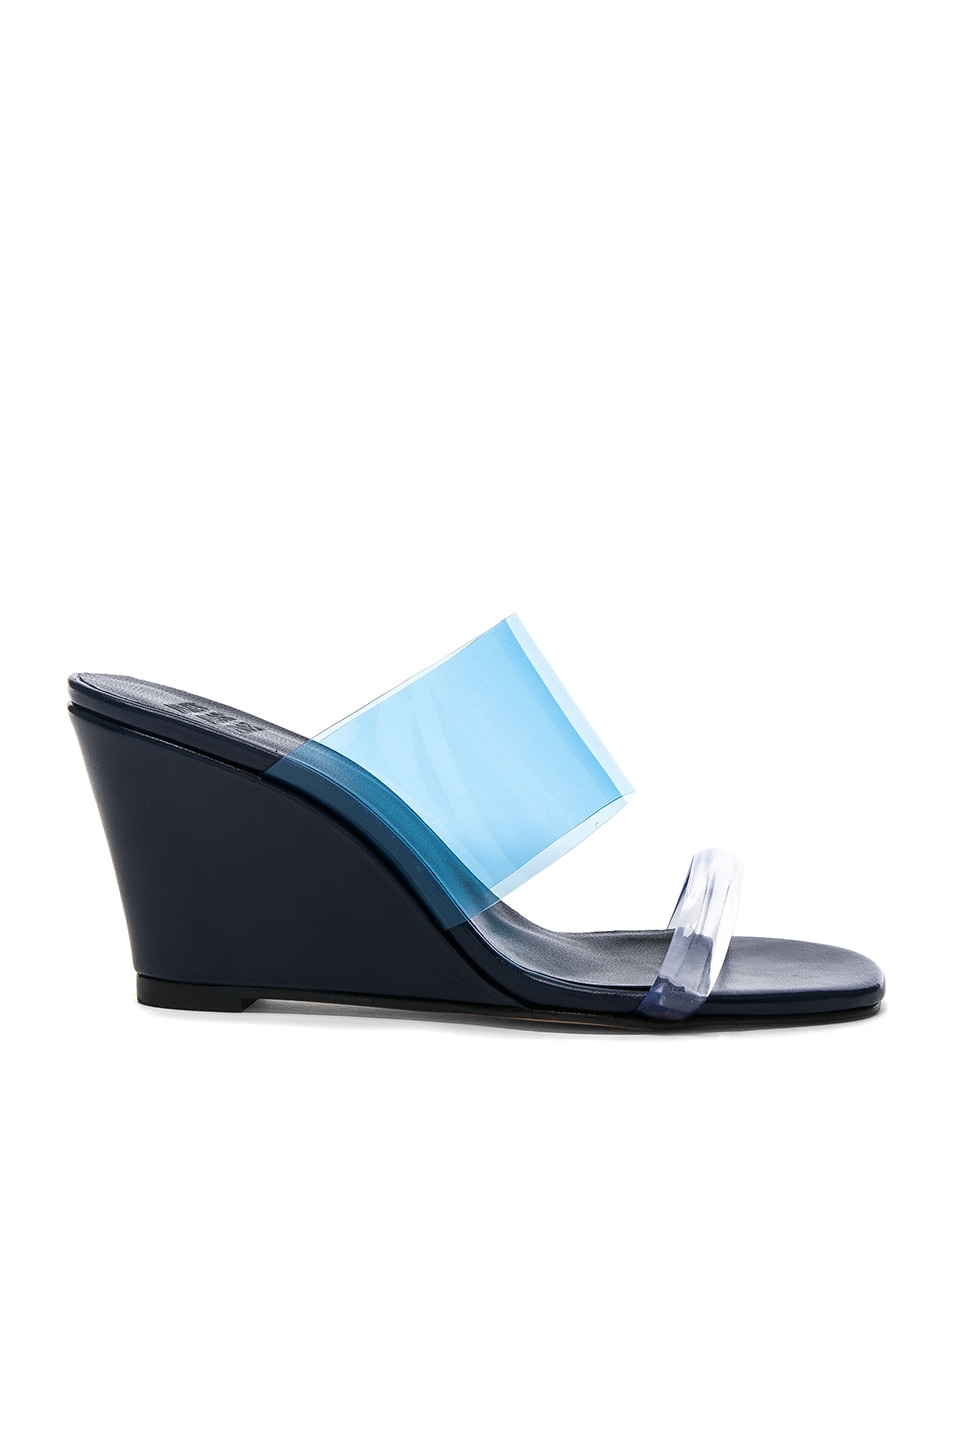 Image 1 of Maryam Nassir Zadeh PVC Olympia Wedges in Navy Calf & Blue Plastic